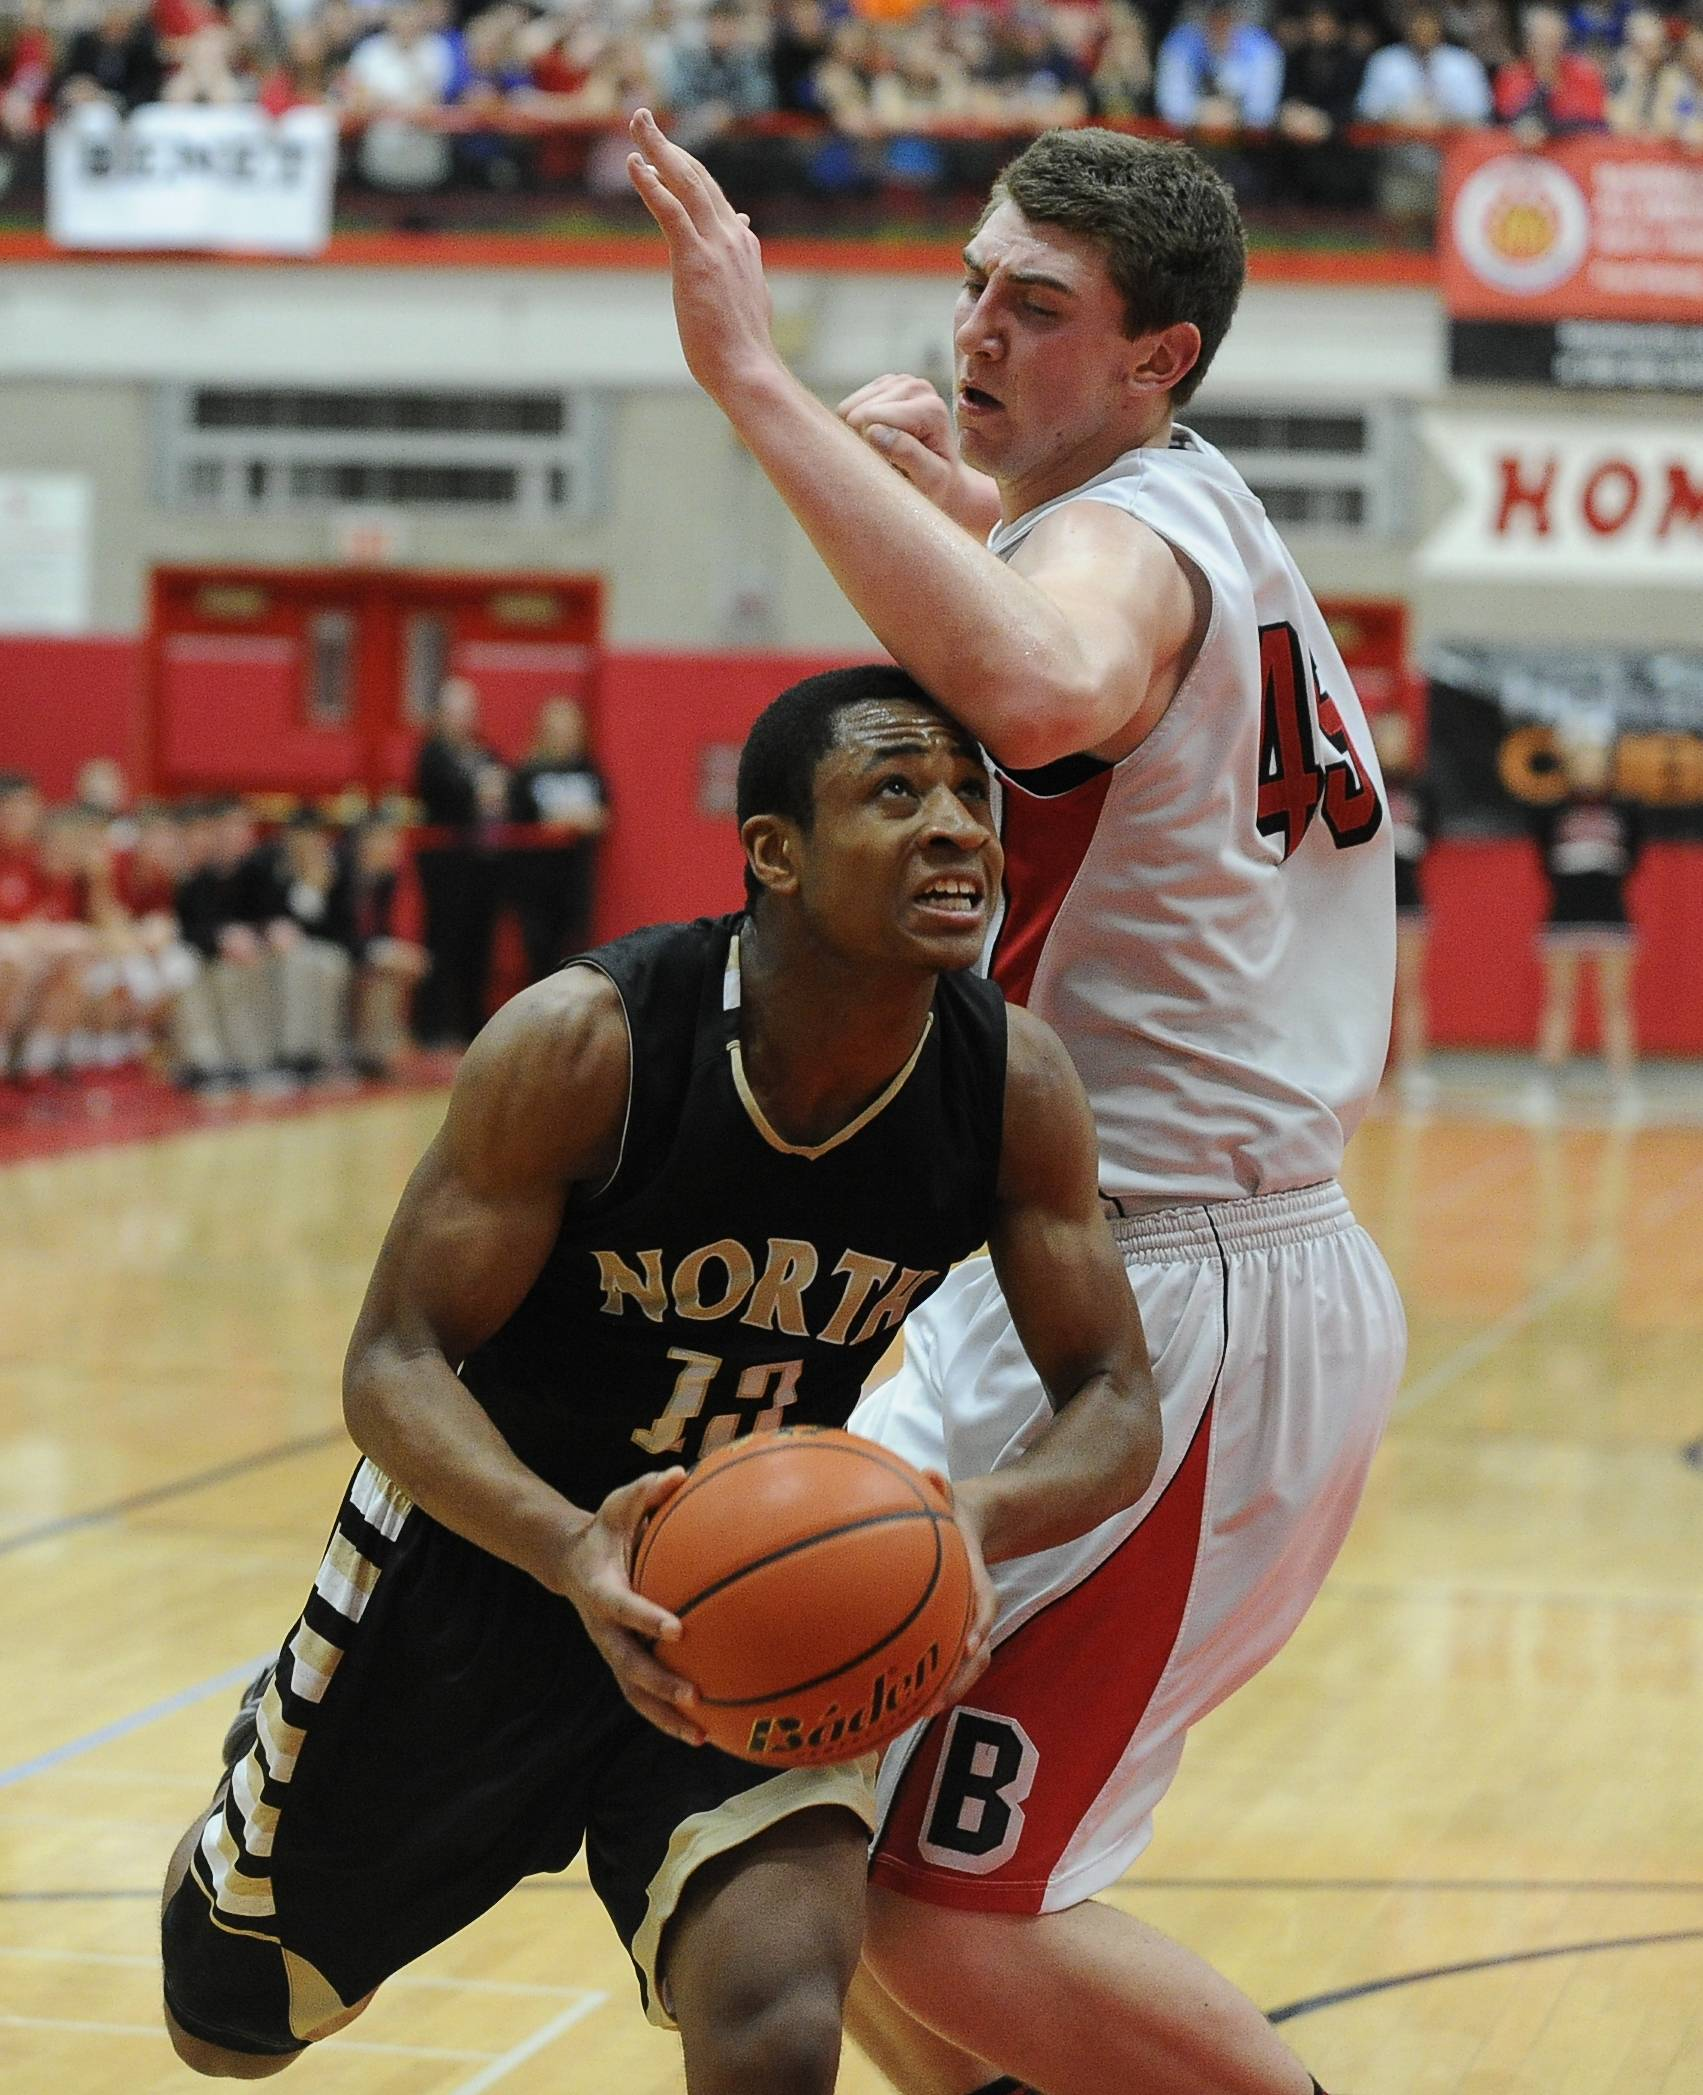 Glenbard North played Benet Academy Tuesday, March 18 at Hinsdale Central for the Class 4A boys basketball supersectional.